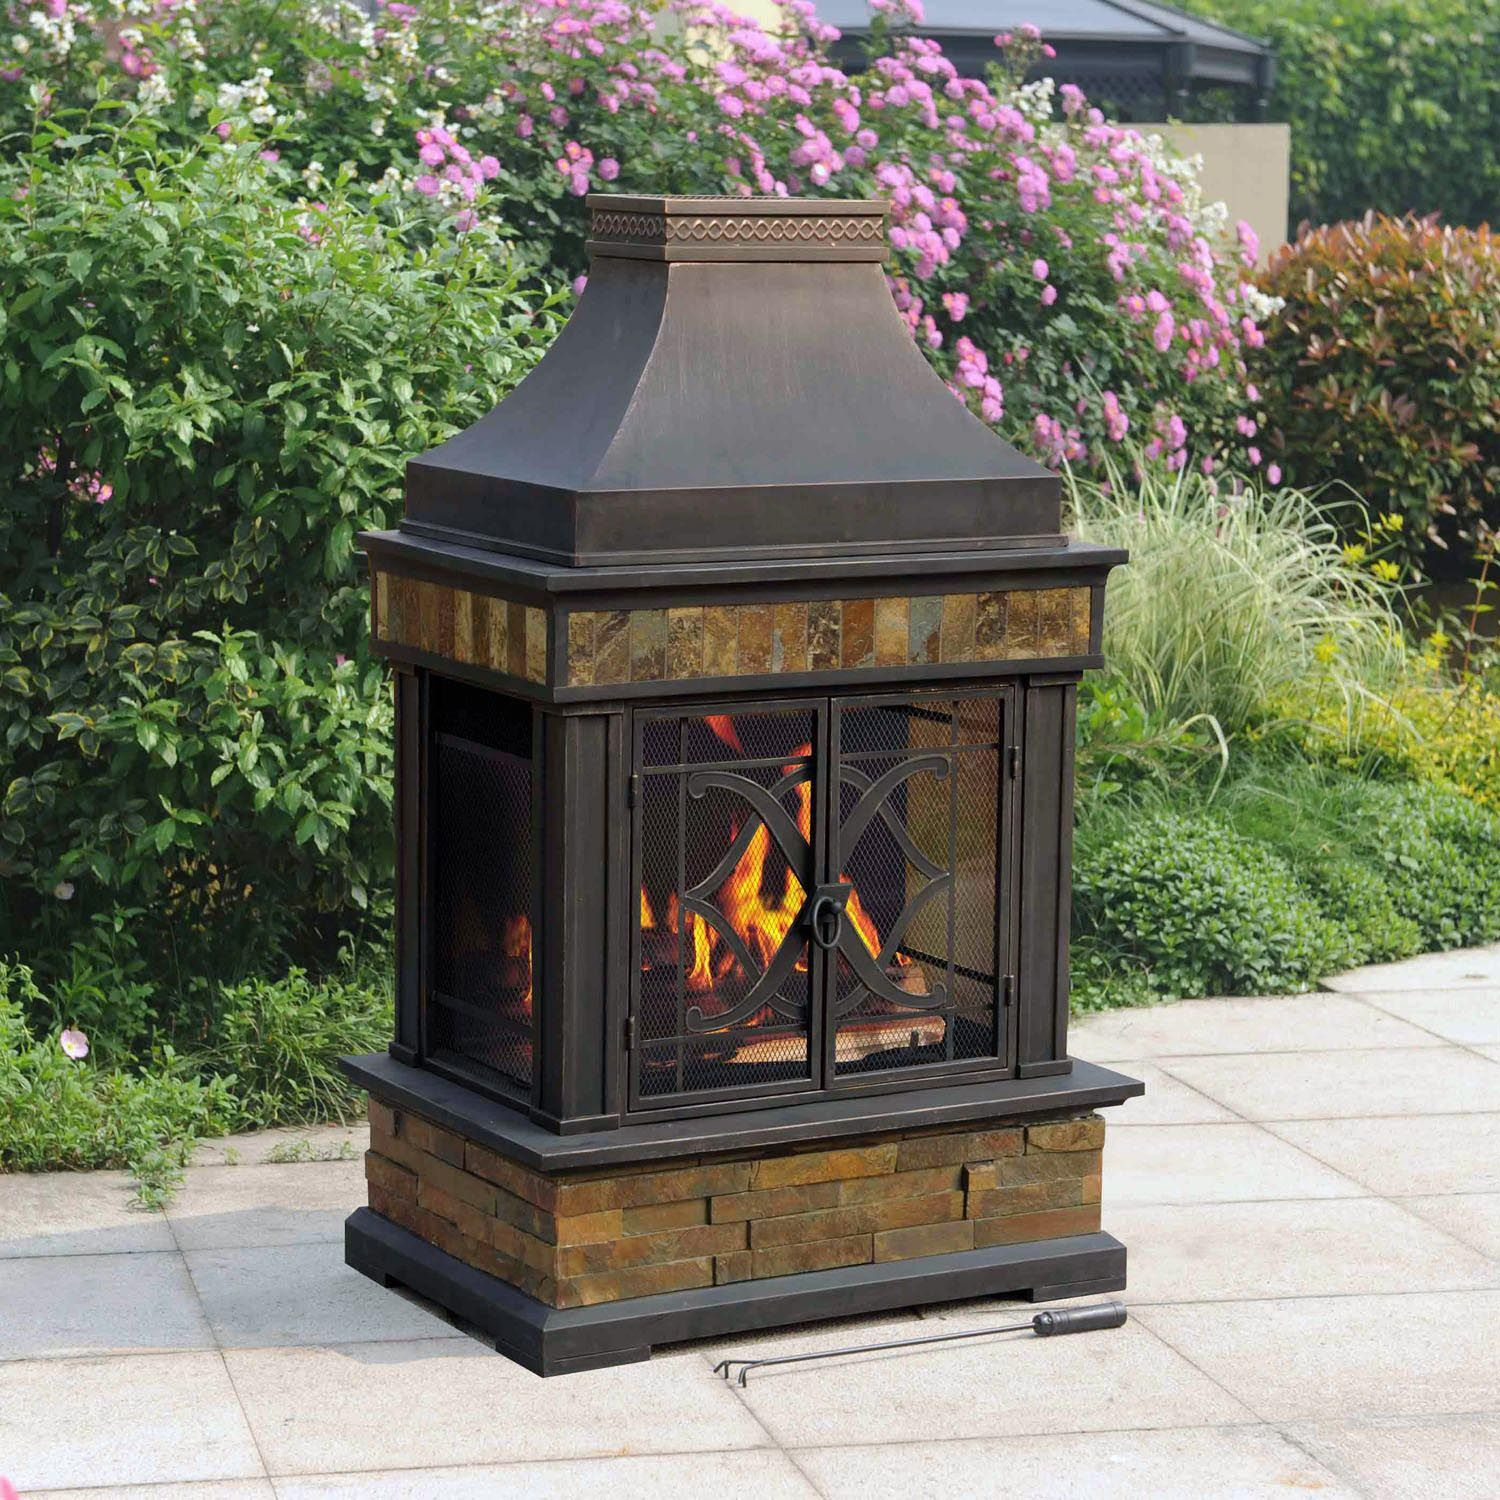 792ef370f85a5cab6e8f9bfe99ee2b7f Top Result 50 Awesome Outdoor Fire Table Natural Gas